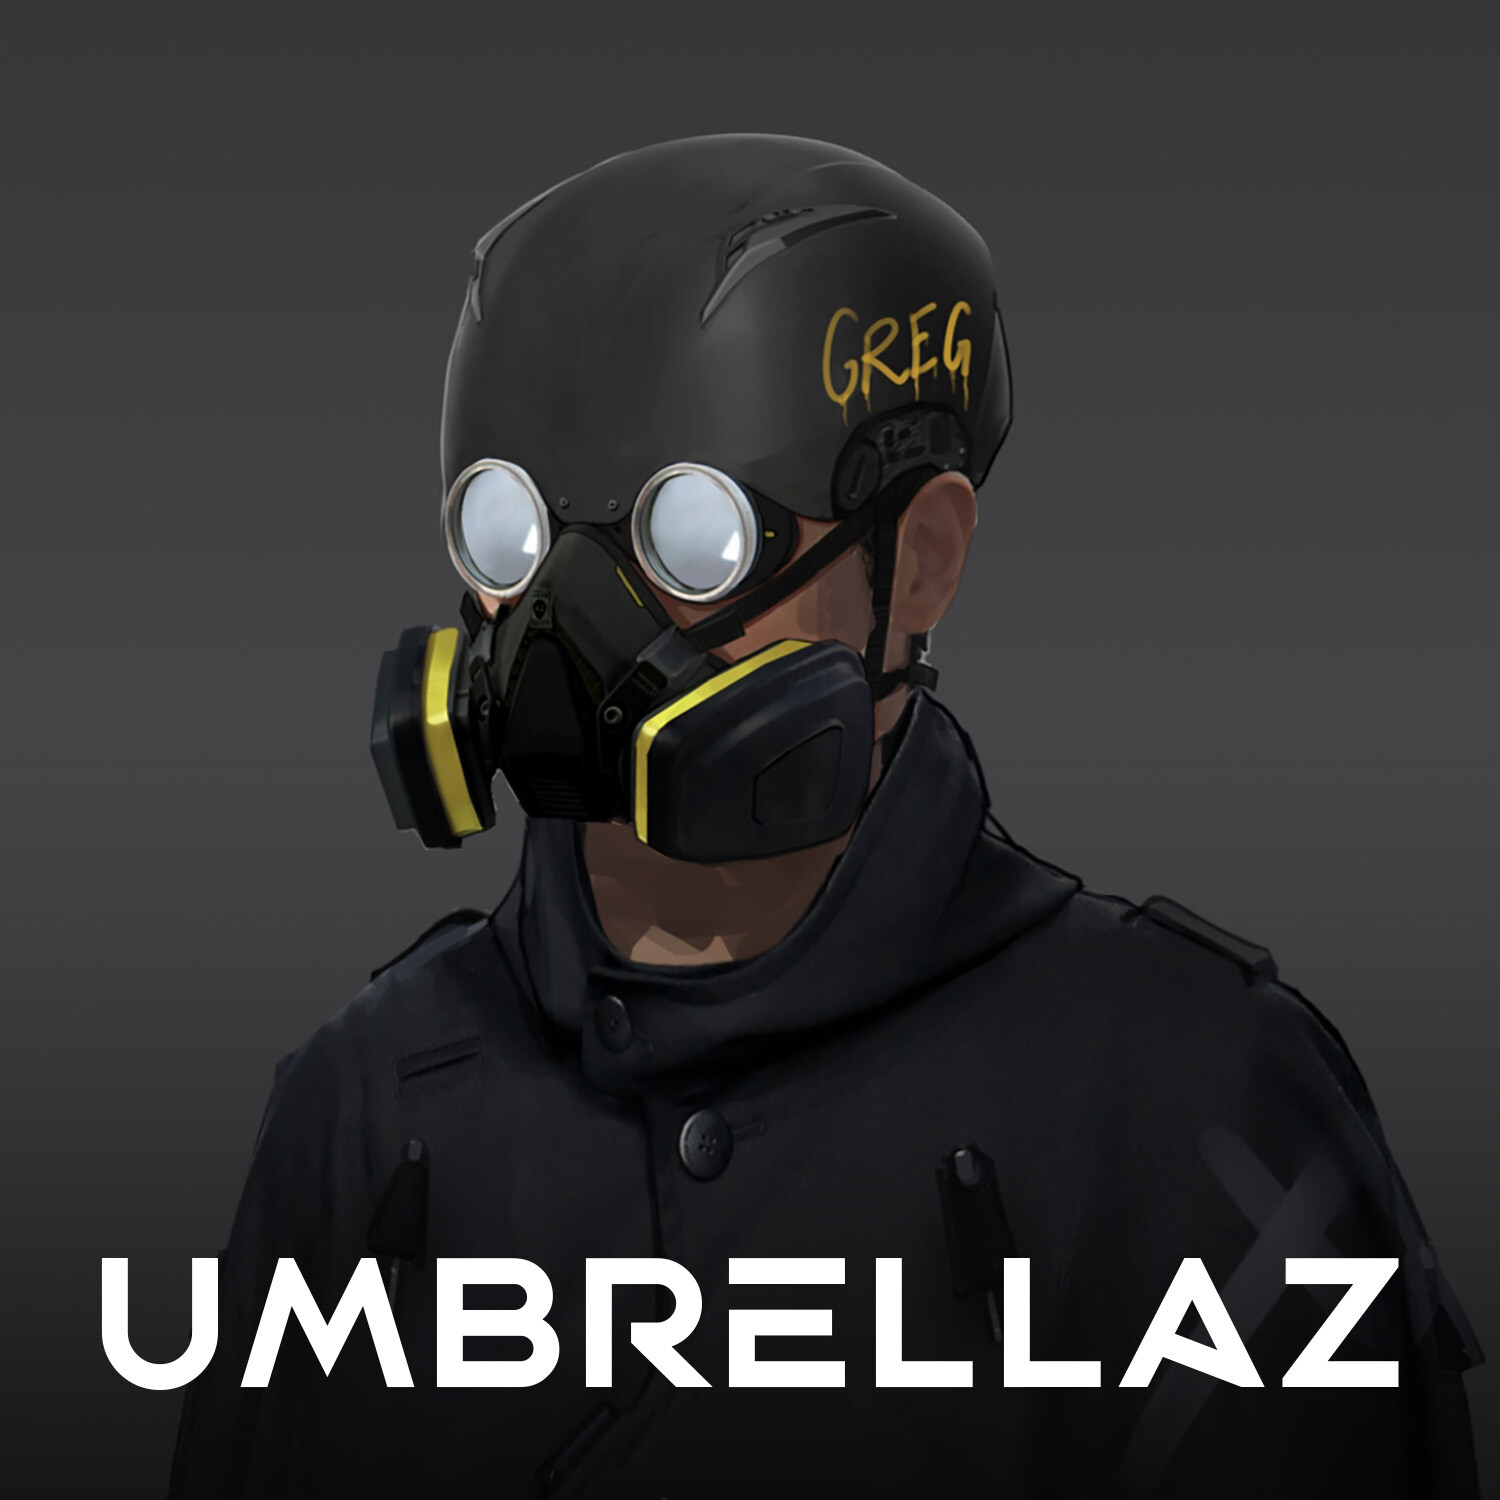 UMBRELLAz - Rebels Outfit